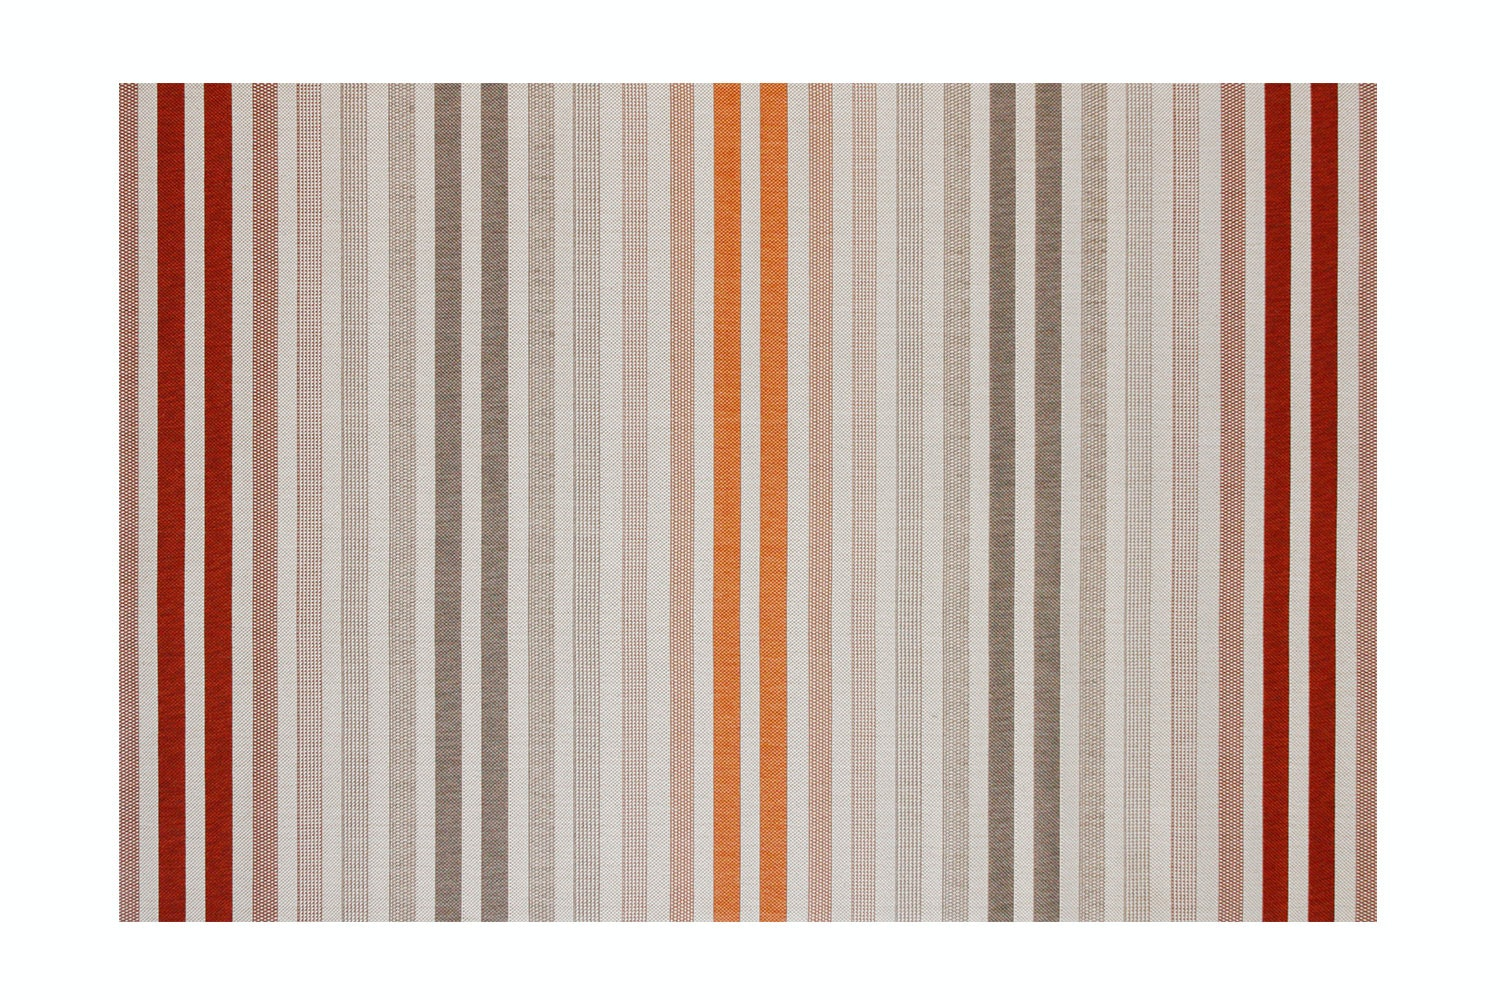 Tolaga Bay Outdoor Rug by Limon ( Cream / Red Multi )